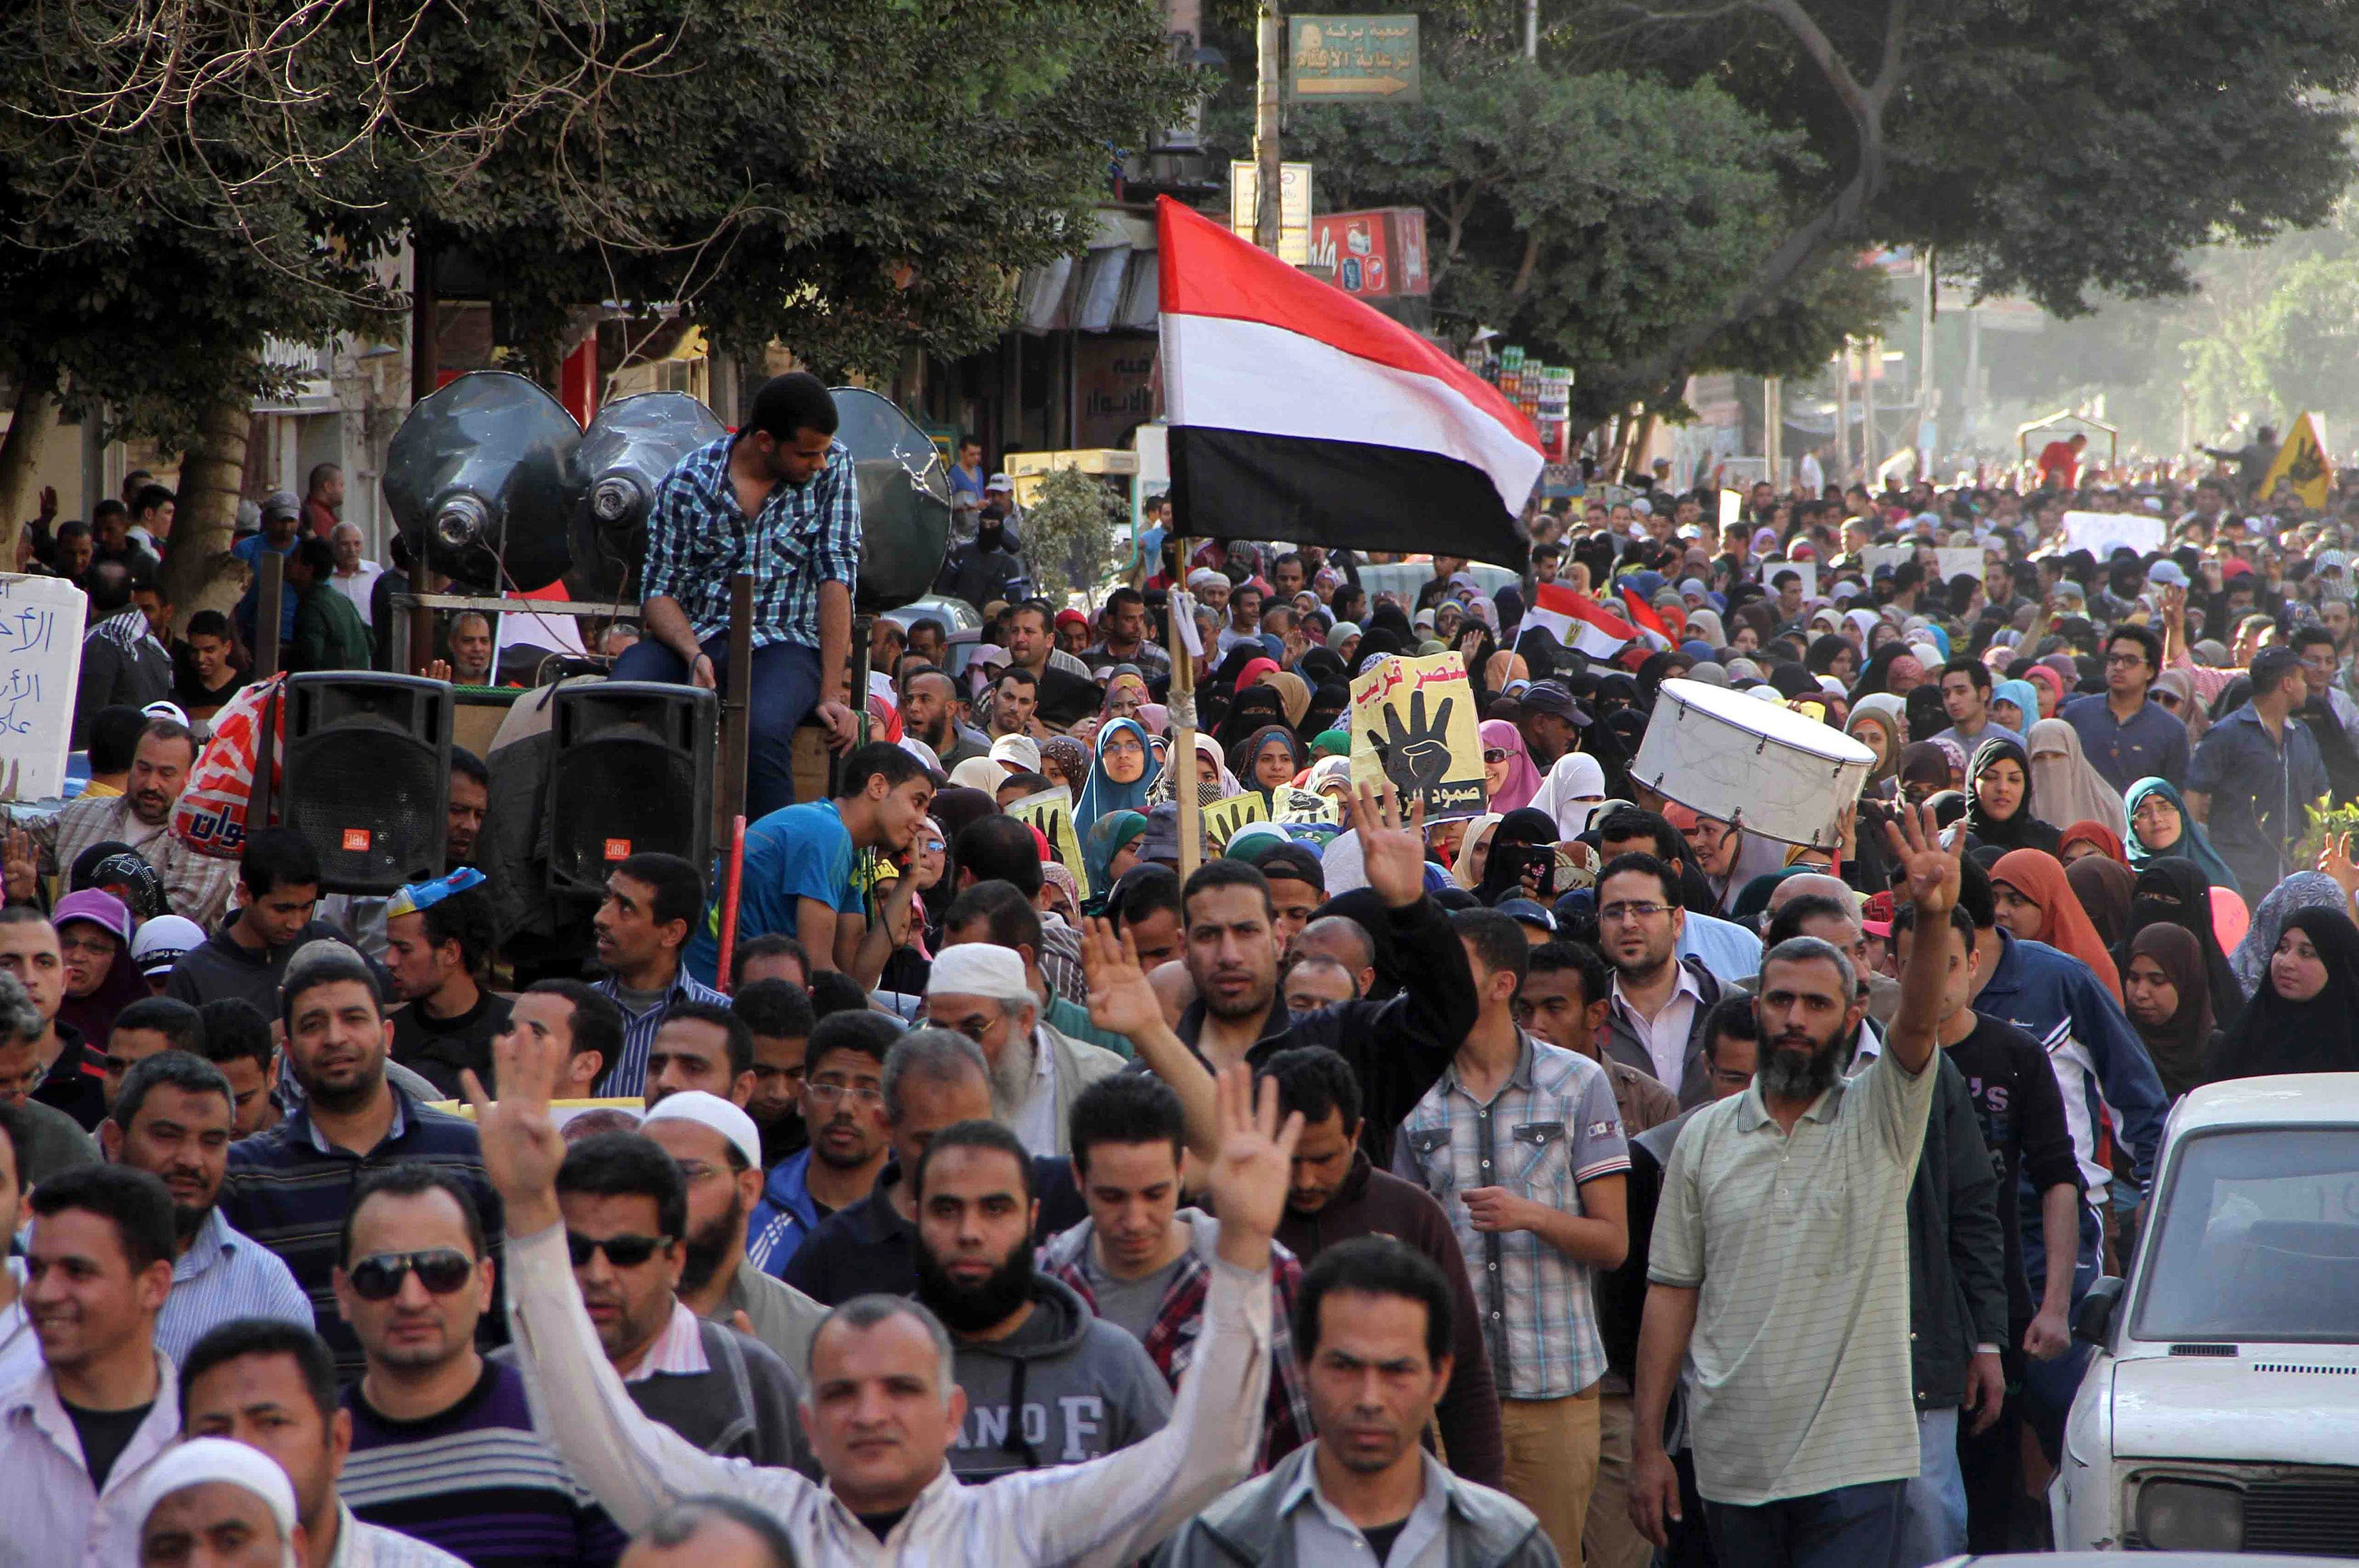 Pro -Mursi supporters walk during a demonstration in Ain Shams area east of Cairo, March 28, 2014. (Reuters)